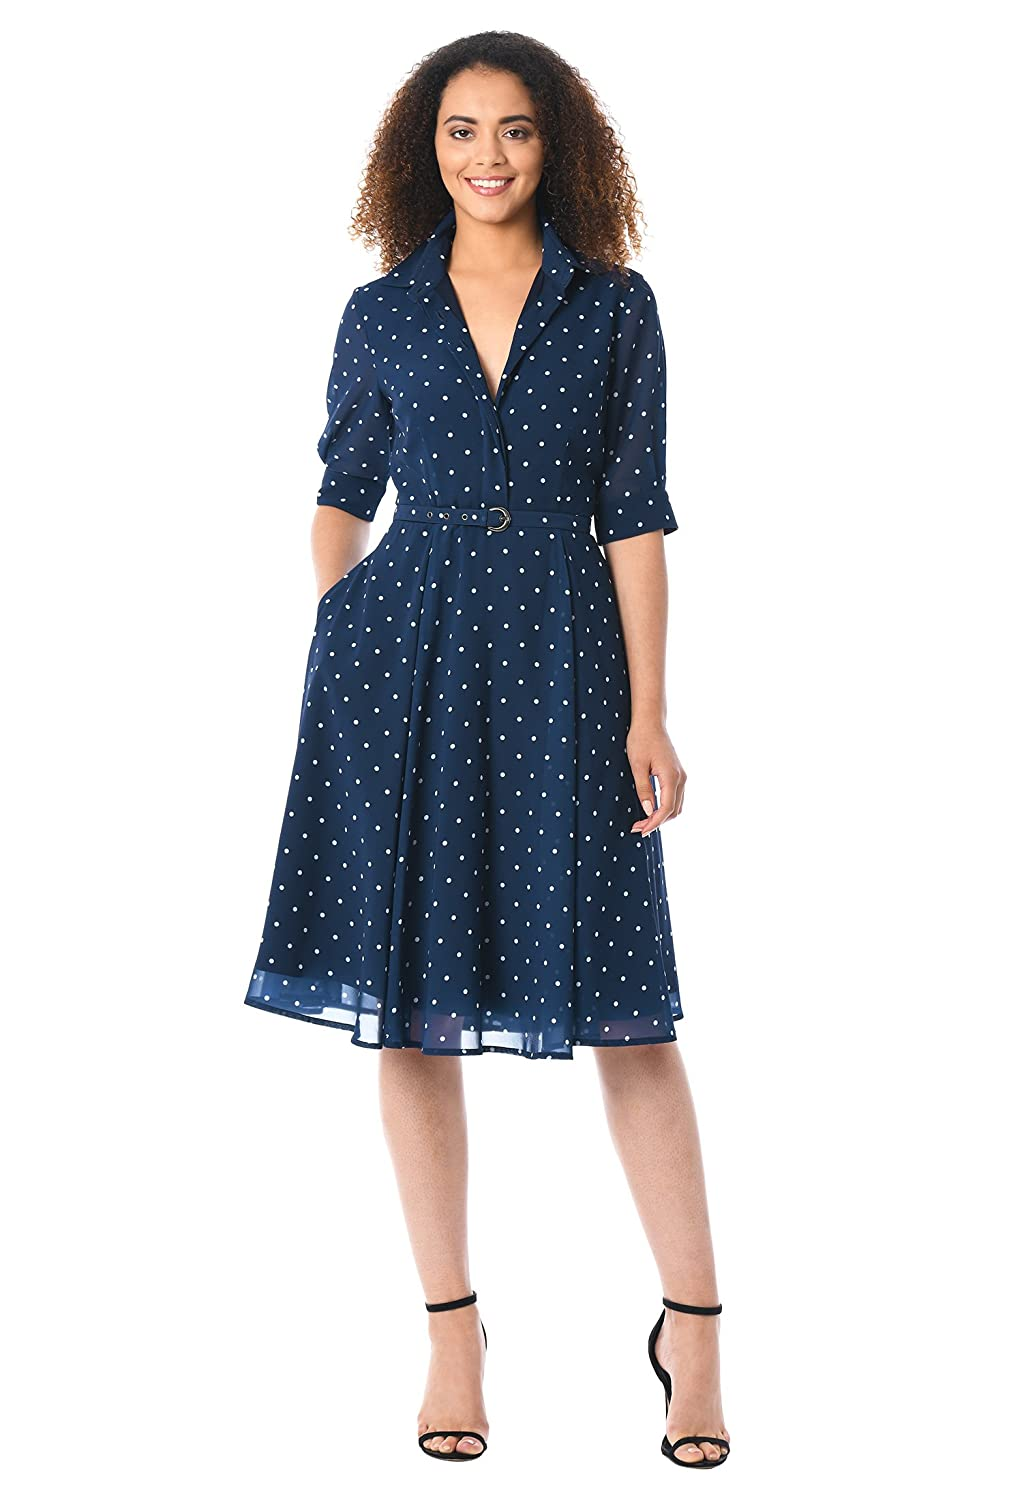 Swing Dance Clothing You Can Dance In Polka dot Print Georgette eShakti Womens Belted Shirtdress $69.95 AT vintagedancer.com